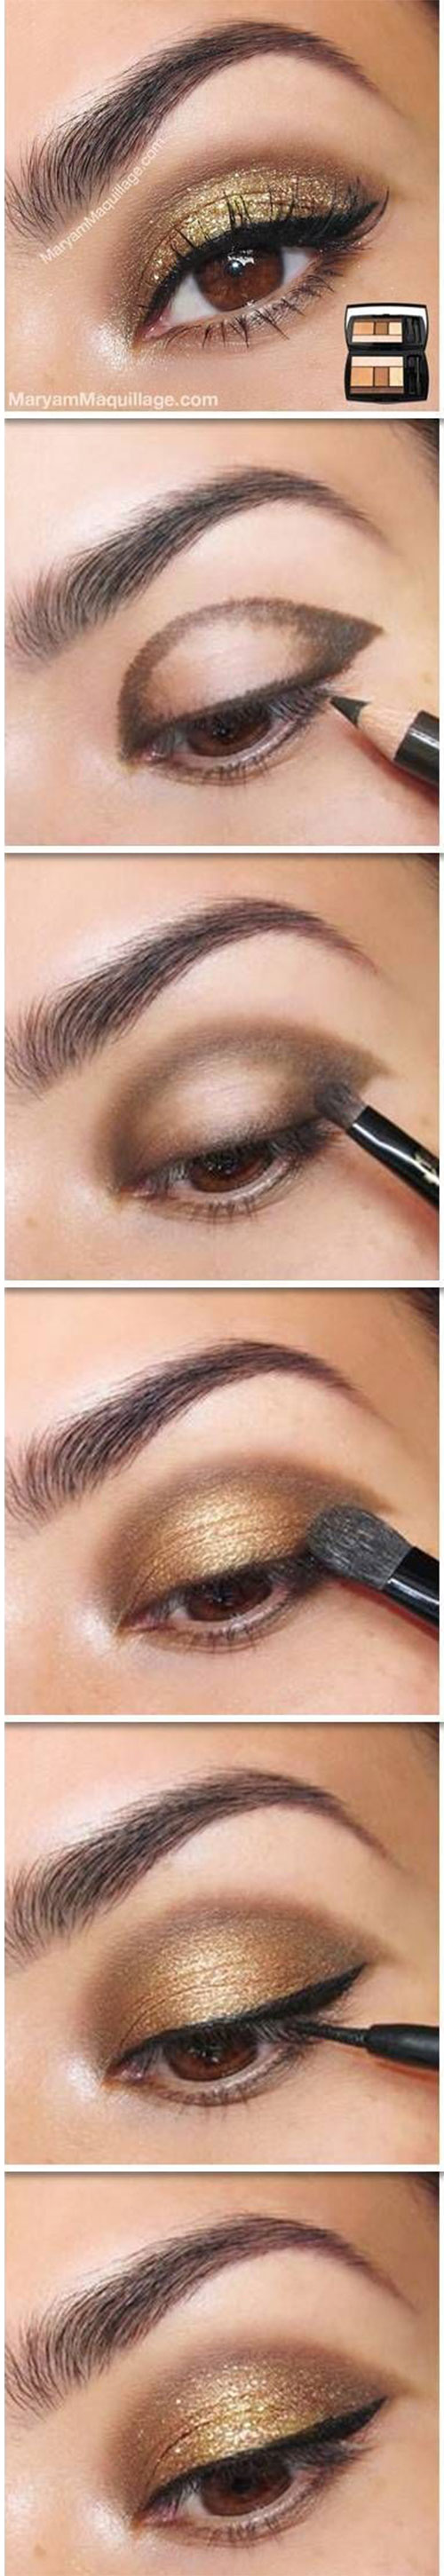 20-Happy-New-Year-Eve-Eye-Makeup-Tutorial-2015-9